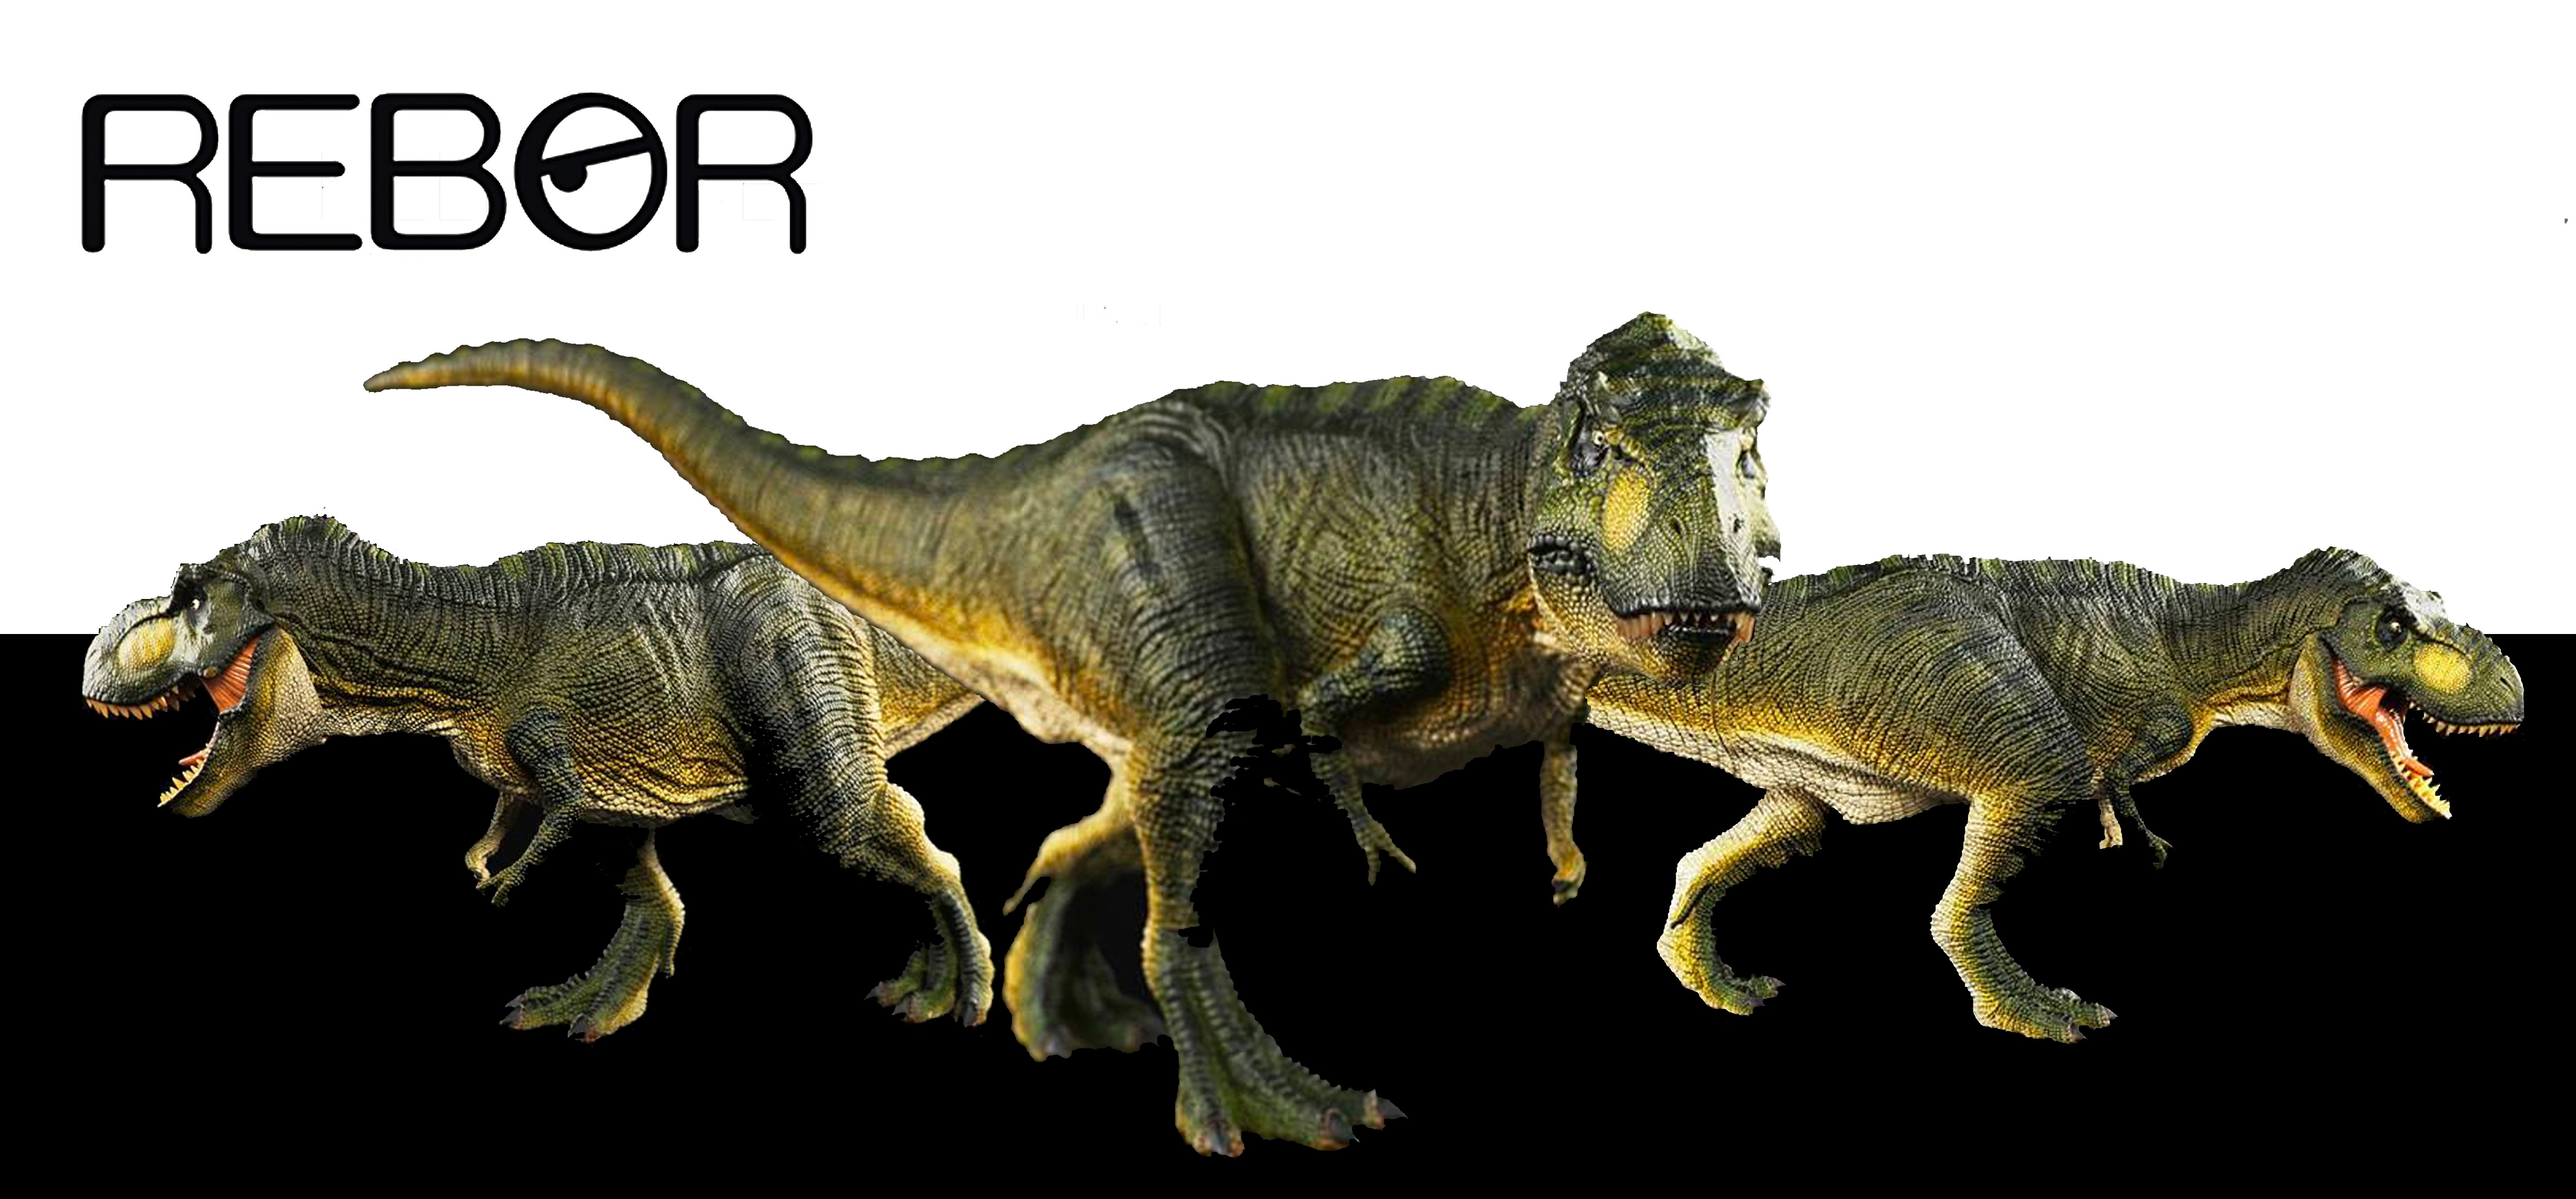 Buy REBOR awesome bro dinosaur models & figurines from Australia's exclusive online REBOR distributor. Worldwide shipping available.